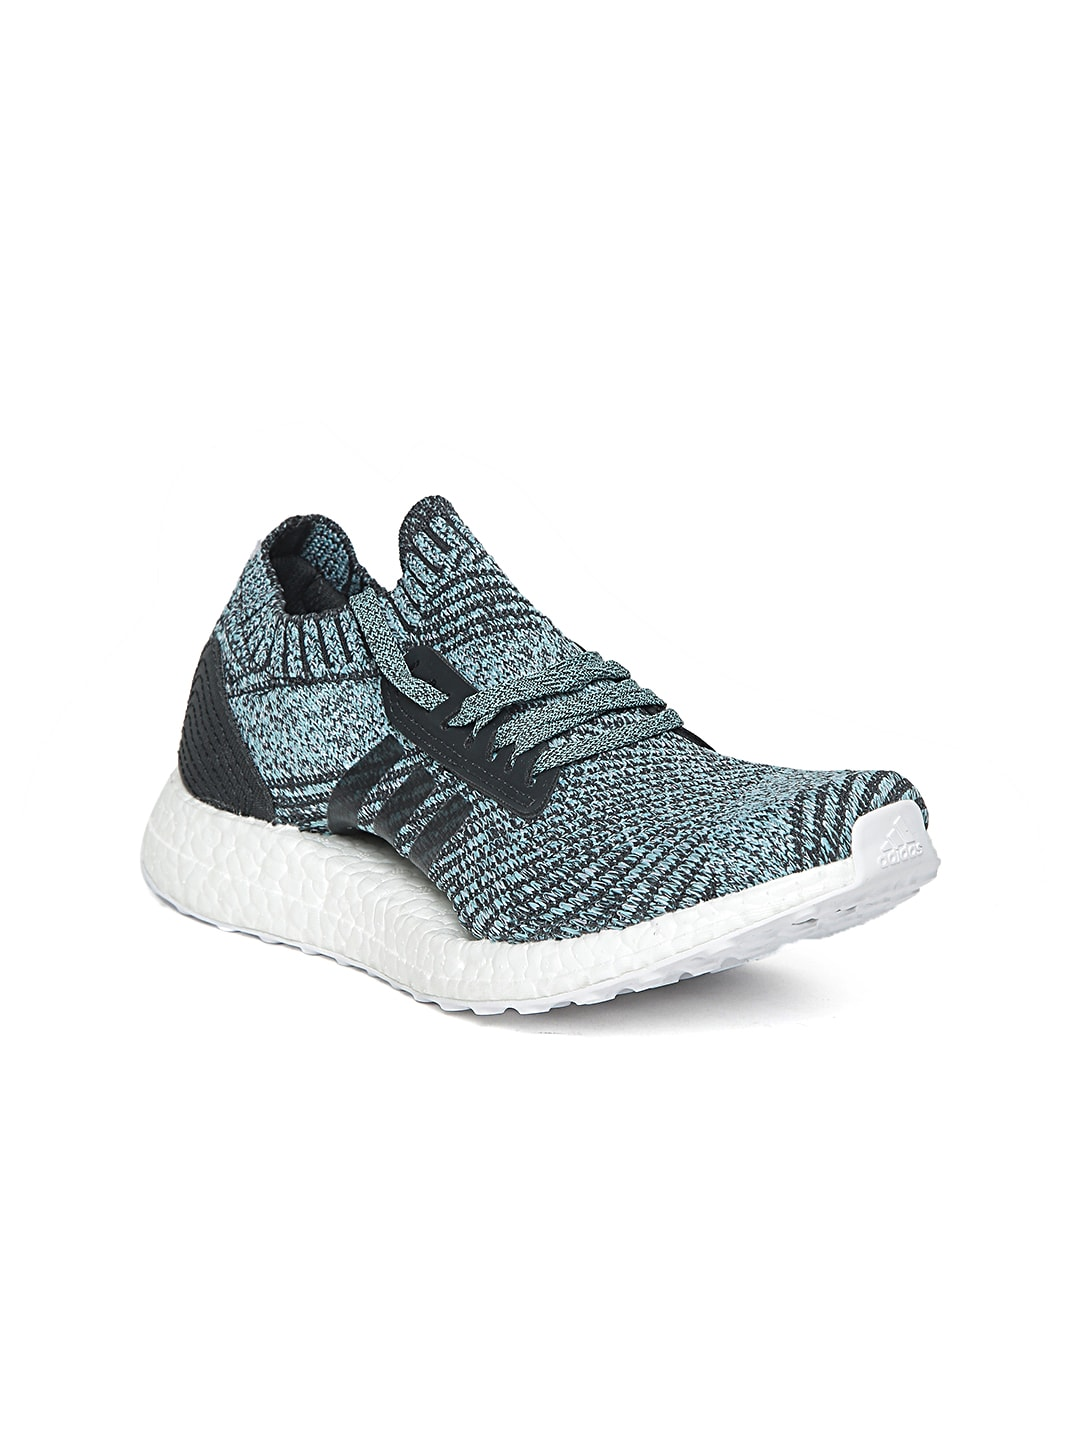 Adidas Ultraboost - Buy Adidas Ultraboost online in India b7c93ddd4c